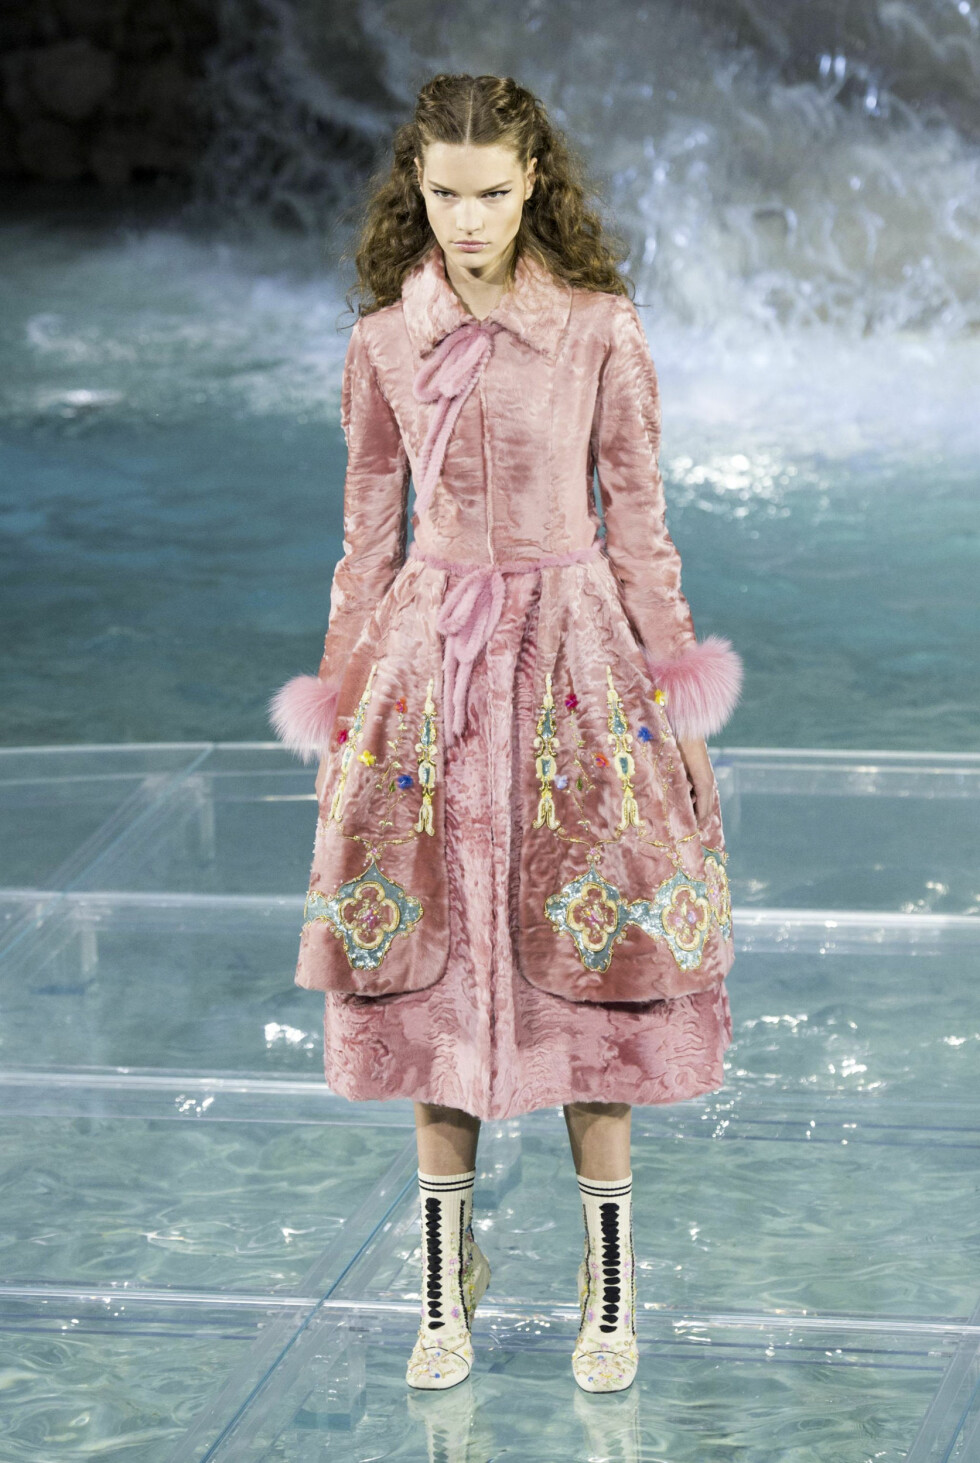 A model wears a creations part of the Fendi fashion house collection presented on a catwalk over Rome's historical Trevi Fountain, during a show marking the 90th anniversary of the birth of the brand, Thursday, July 7, 2016. (Giorgio Onorati/ANSA via AP) Foto: Ap